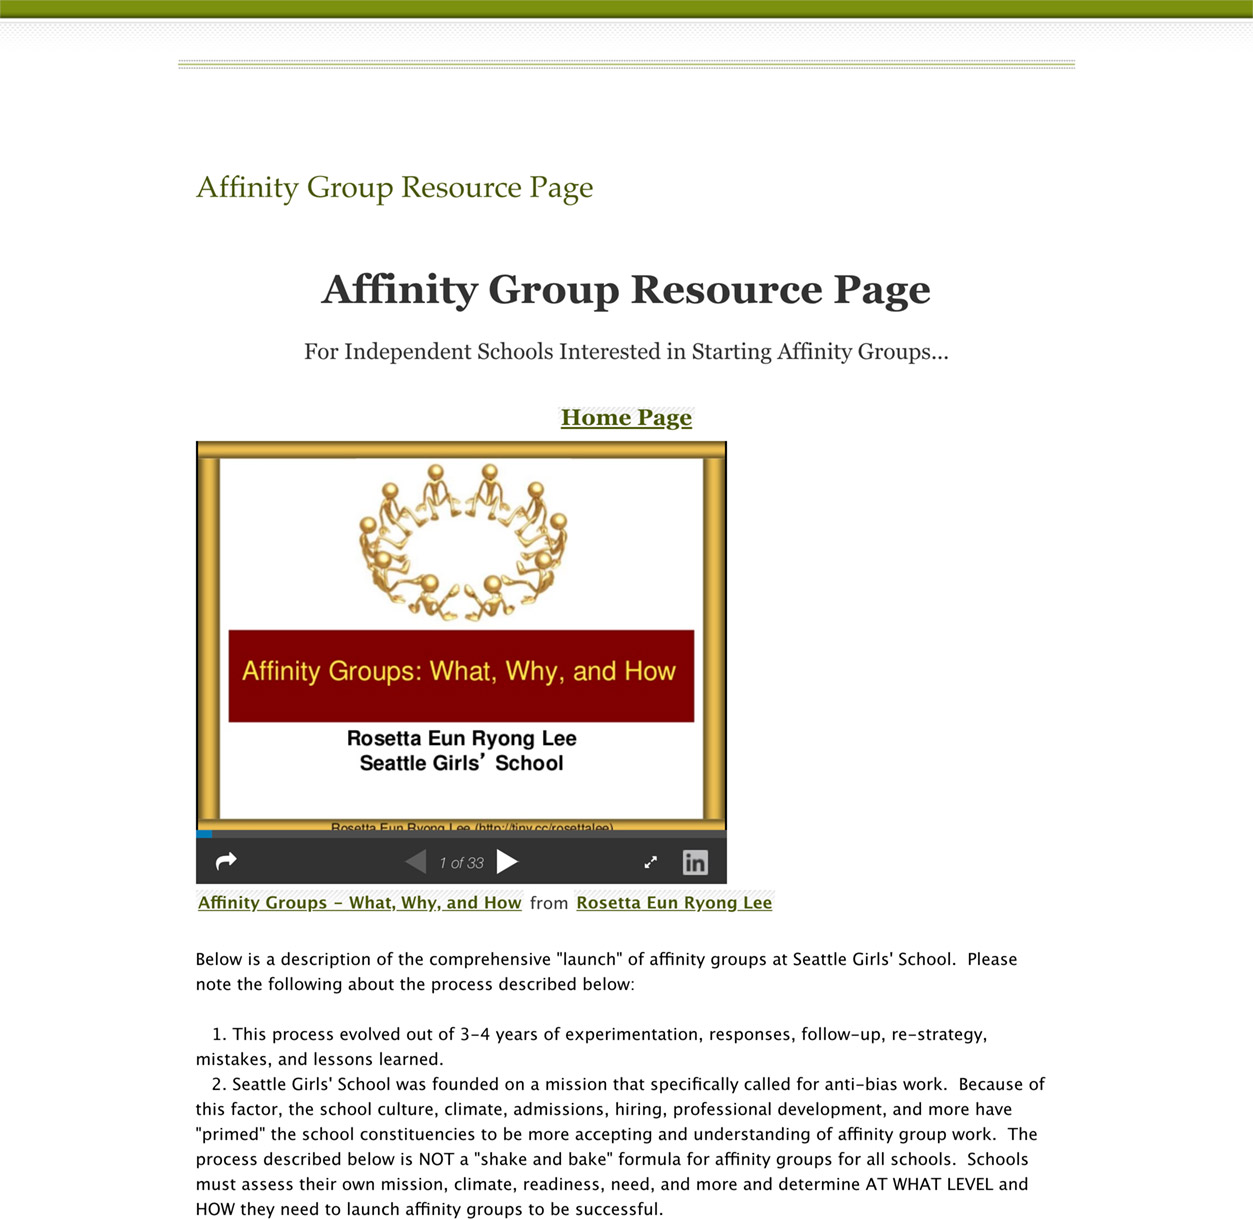 Affinity Group Resource Page